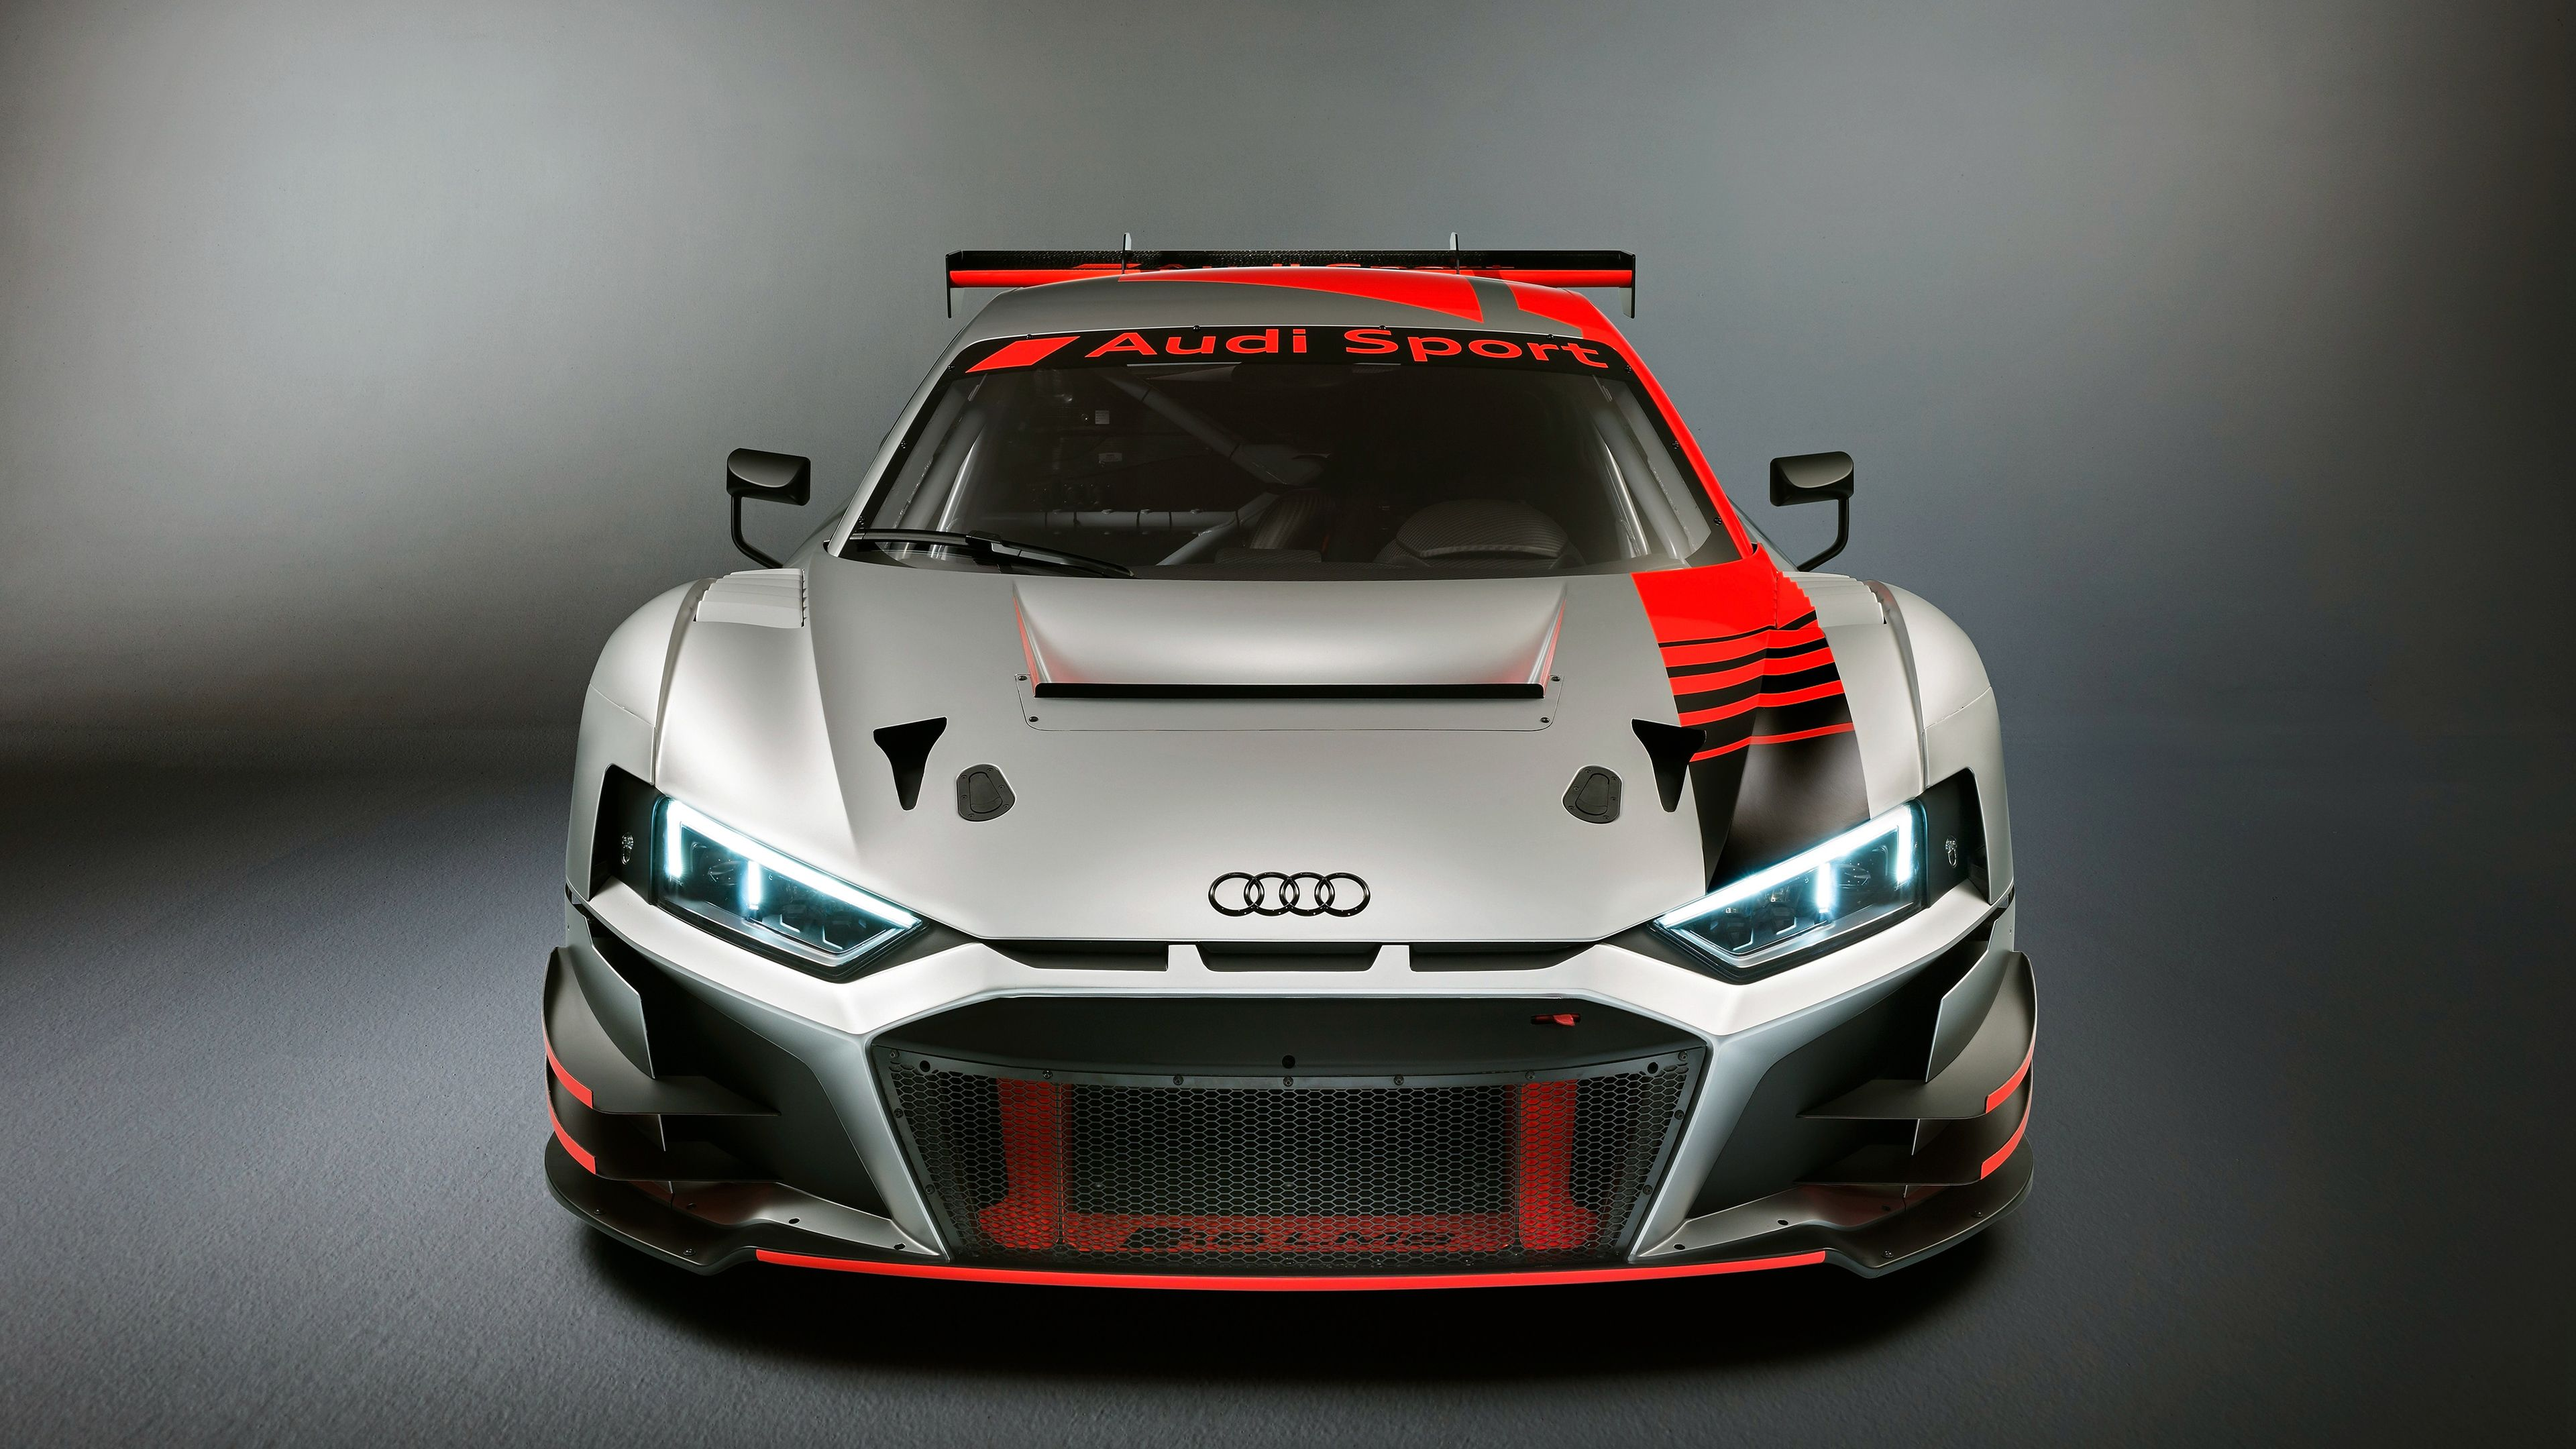 Wallpaper 4k Audi R8 Lms 2019 4k 2019 Cars Wallpapers 4k Wallpapers Audi R8 Lms Wallpapers Audi R8 Wallpapers Audi Wallpapers Cars Wallpapers Hd Wallpaper Spor Arabalar Yaris Arabasi Super Araba